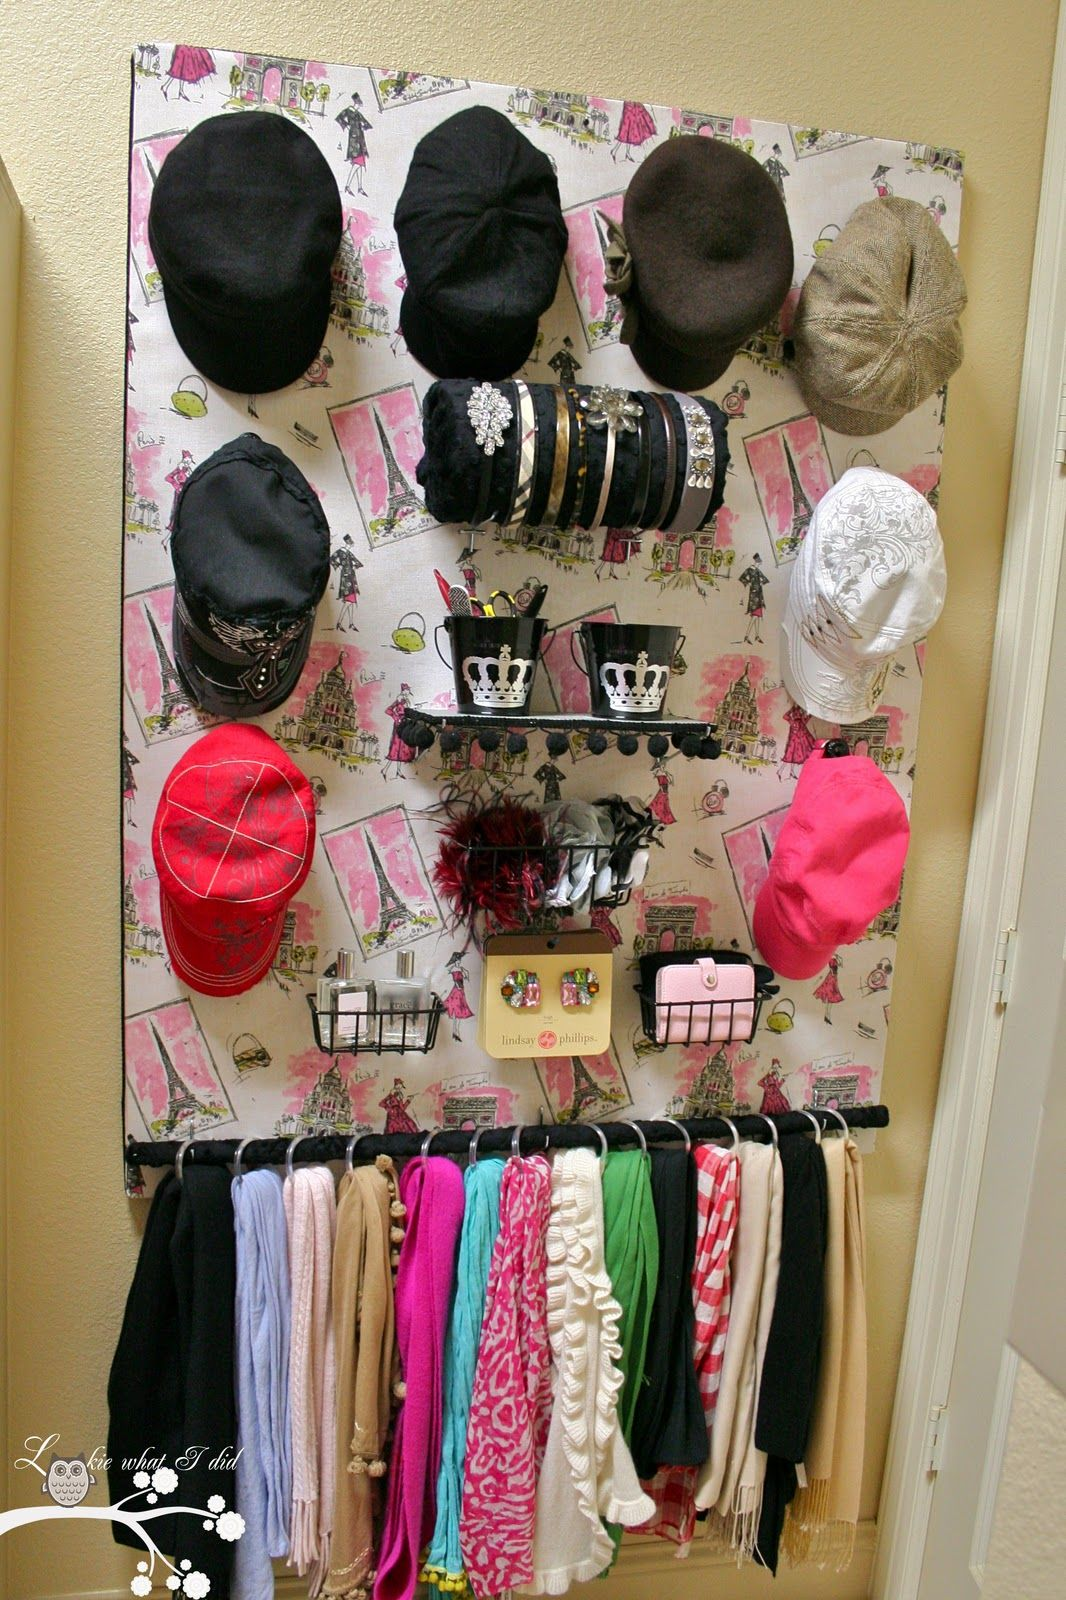 Lookie What I Did: A Closet Organizer for Her